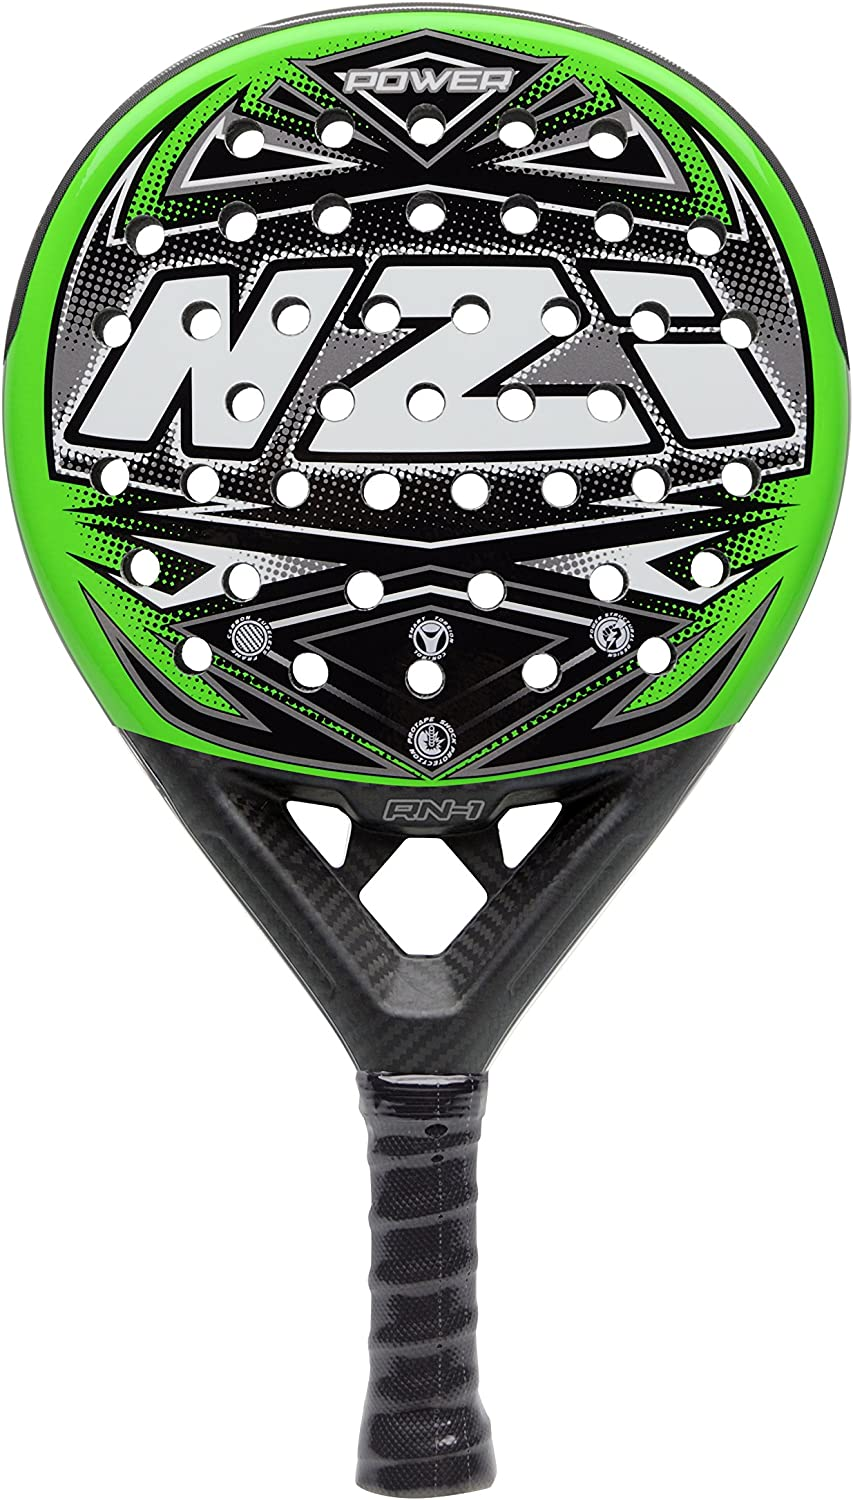 NZI Power Attack Pala de Pádel, Unisex Adulto